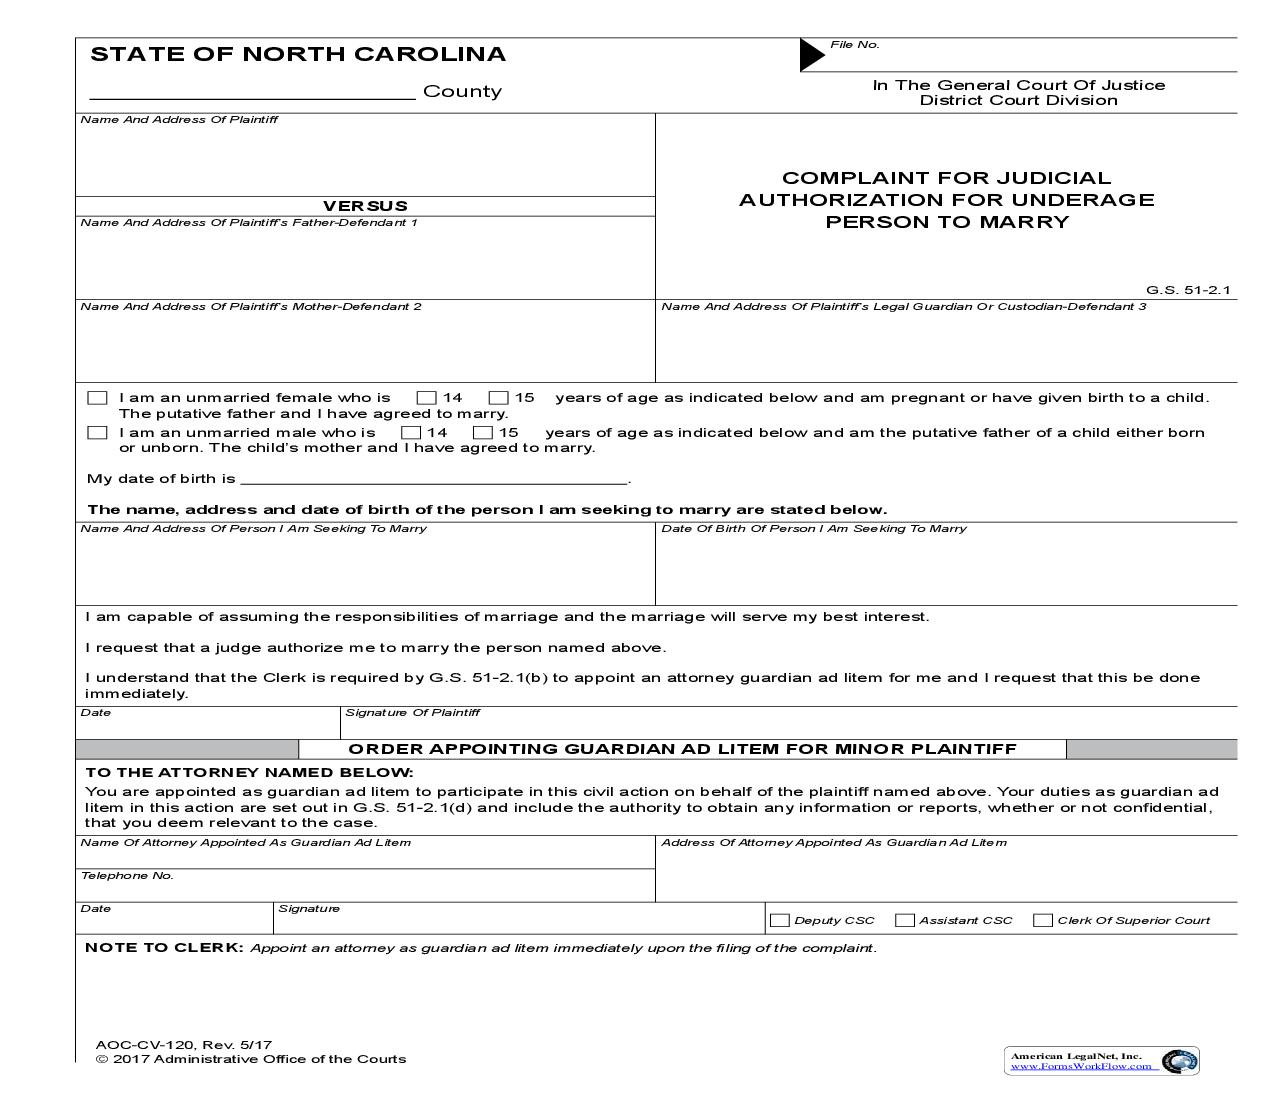 Complaint For Judicial Authorization For Underage Person To Marry {CV-120} | Pdf Fpdf Doc Docx | North Carolina